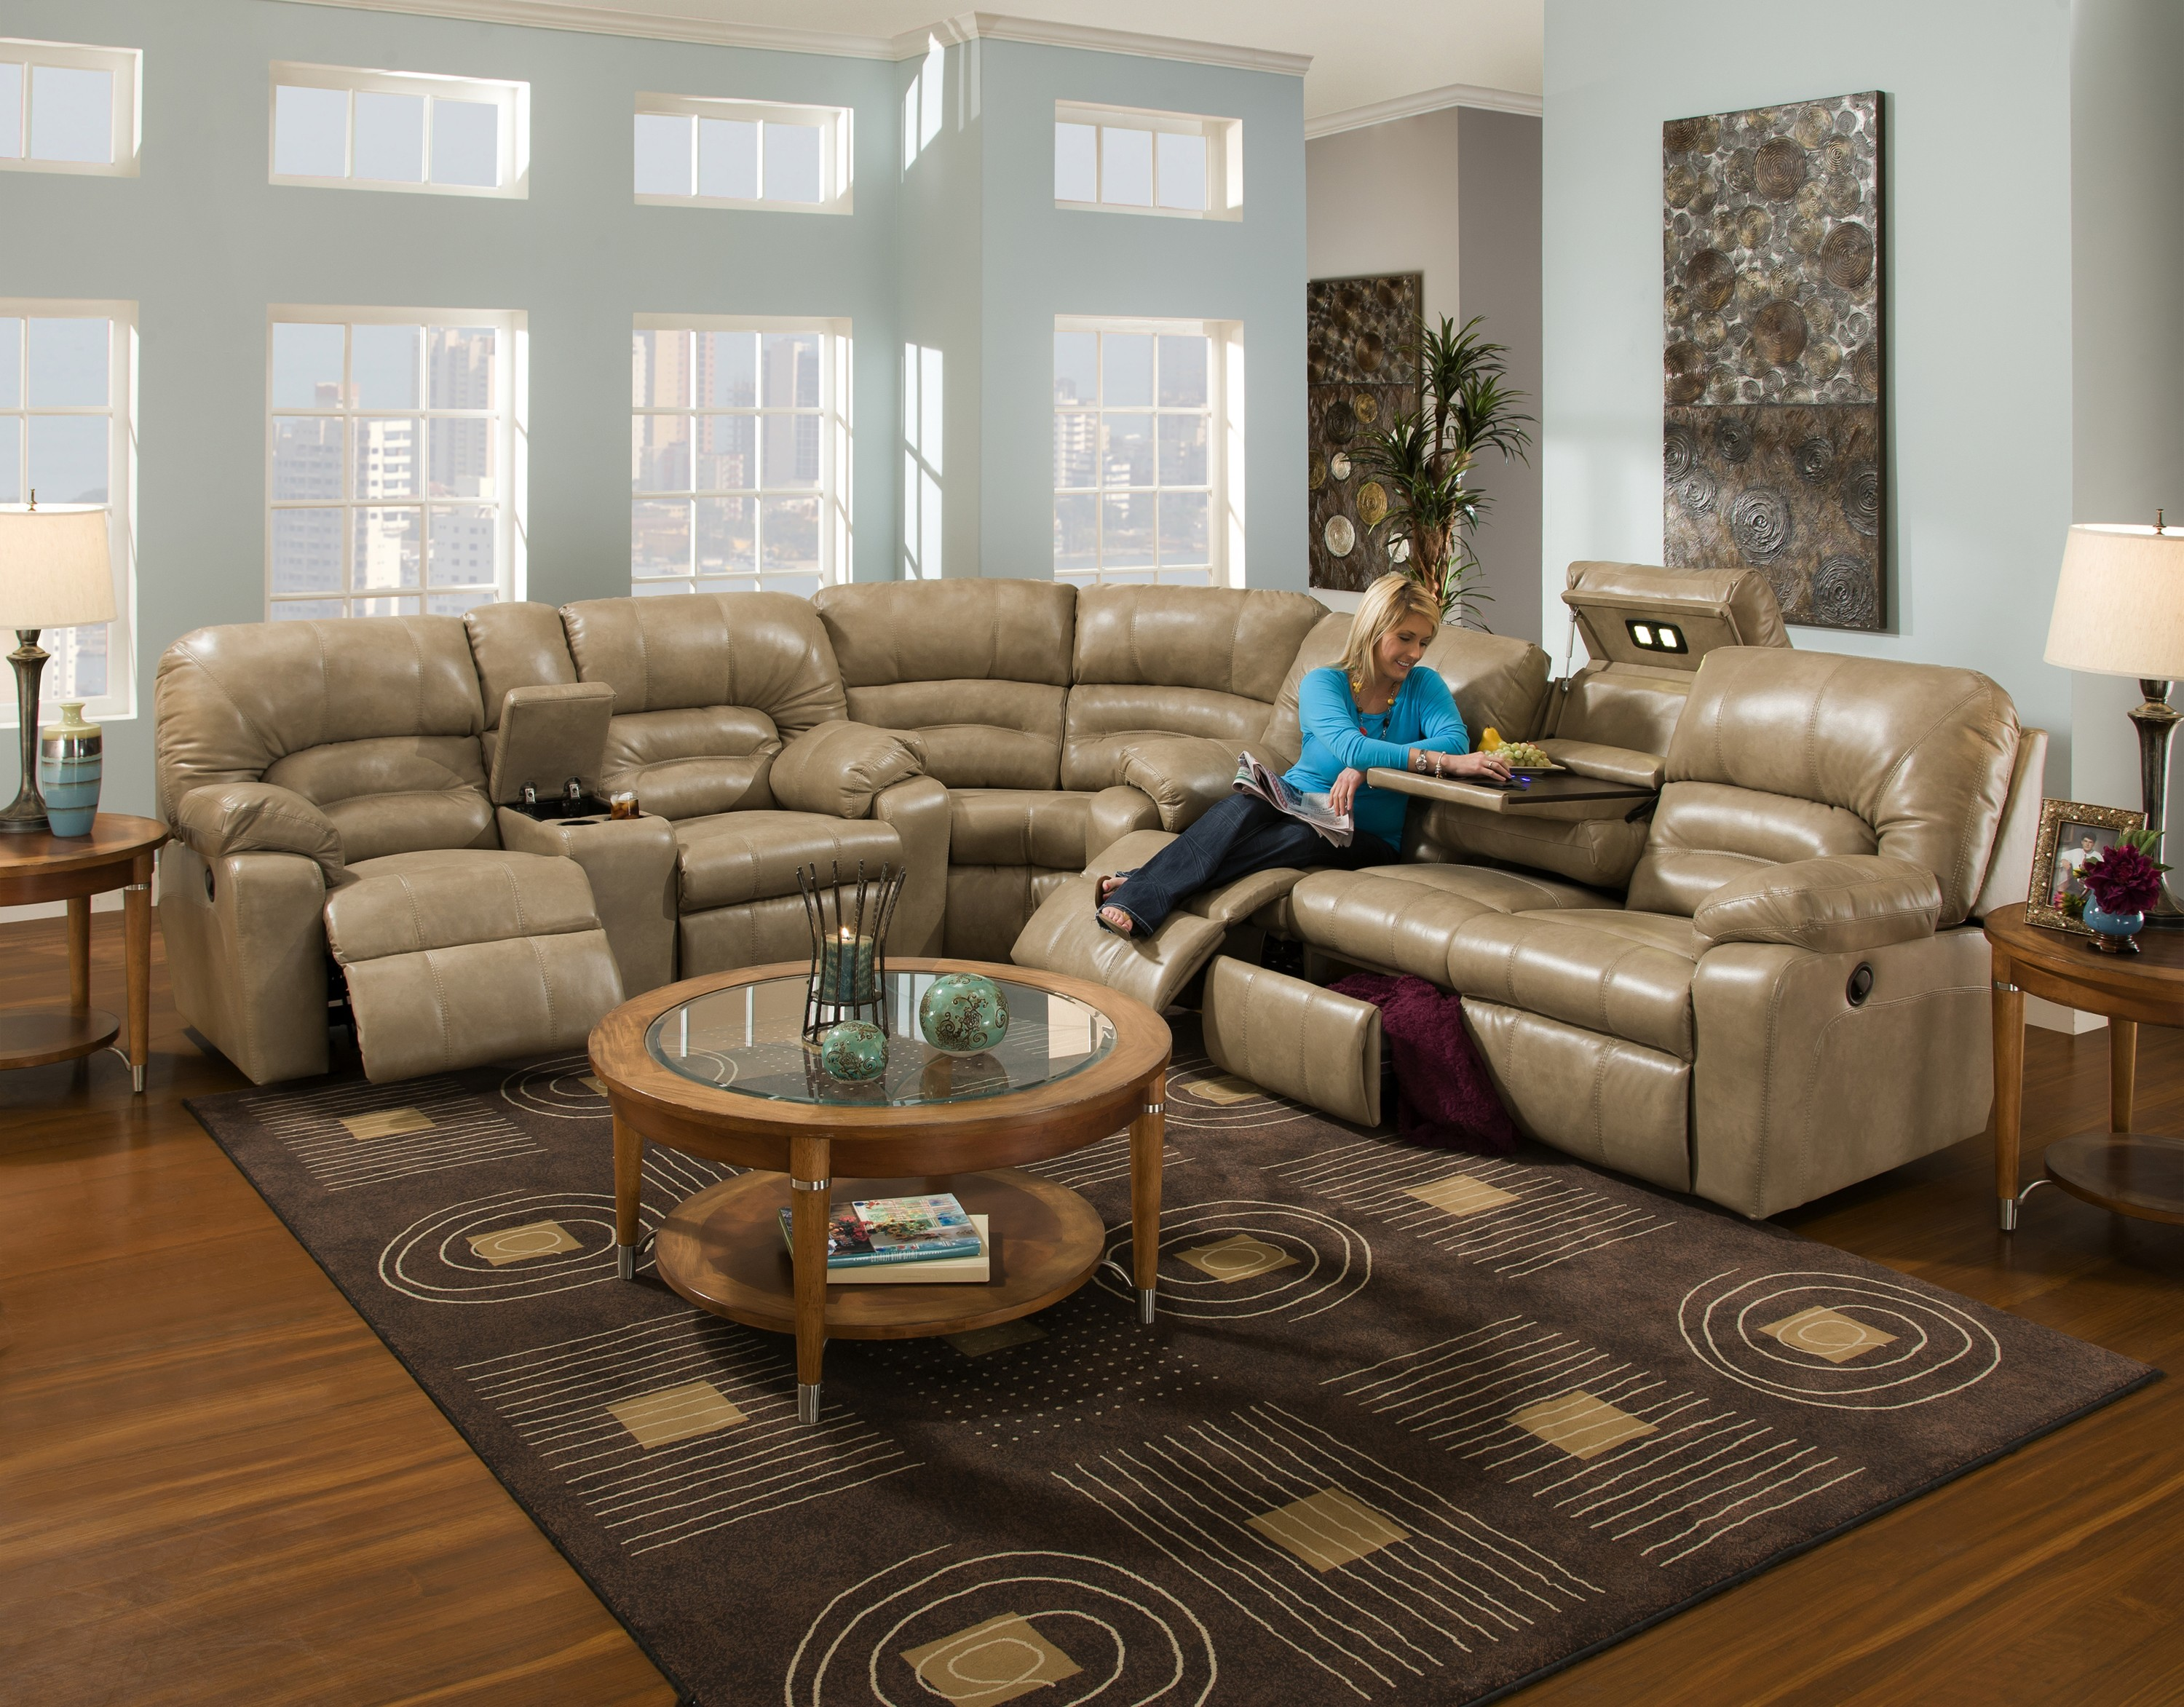 leather cheap sectional sofas in cream on wooden floor plus carpet and round table for living room decor ideas